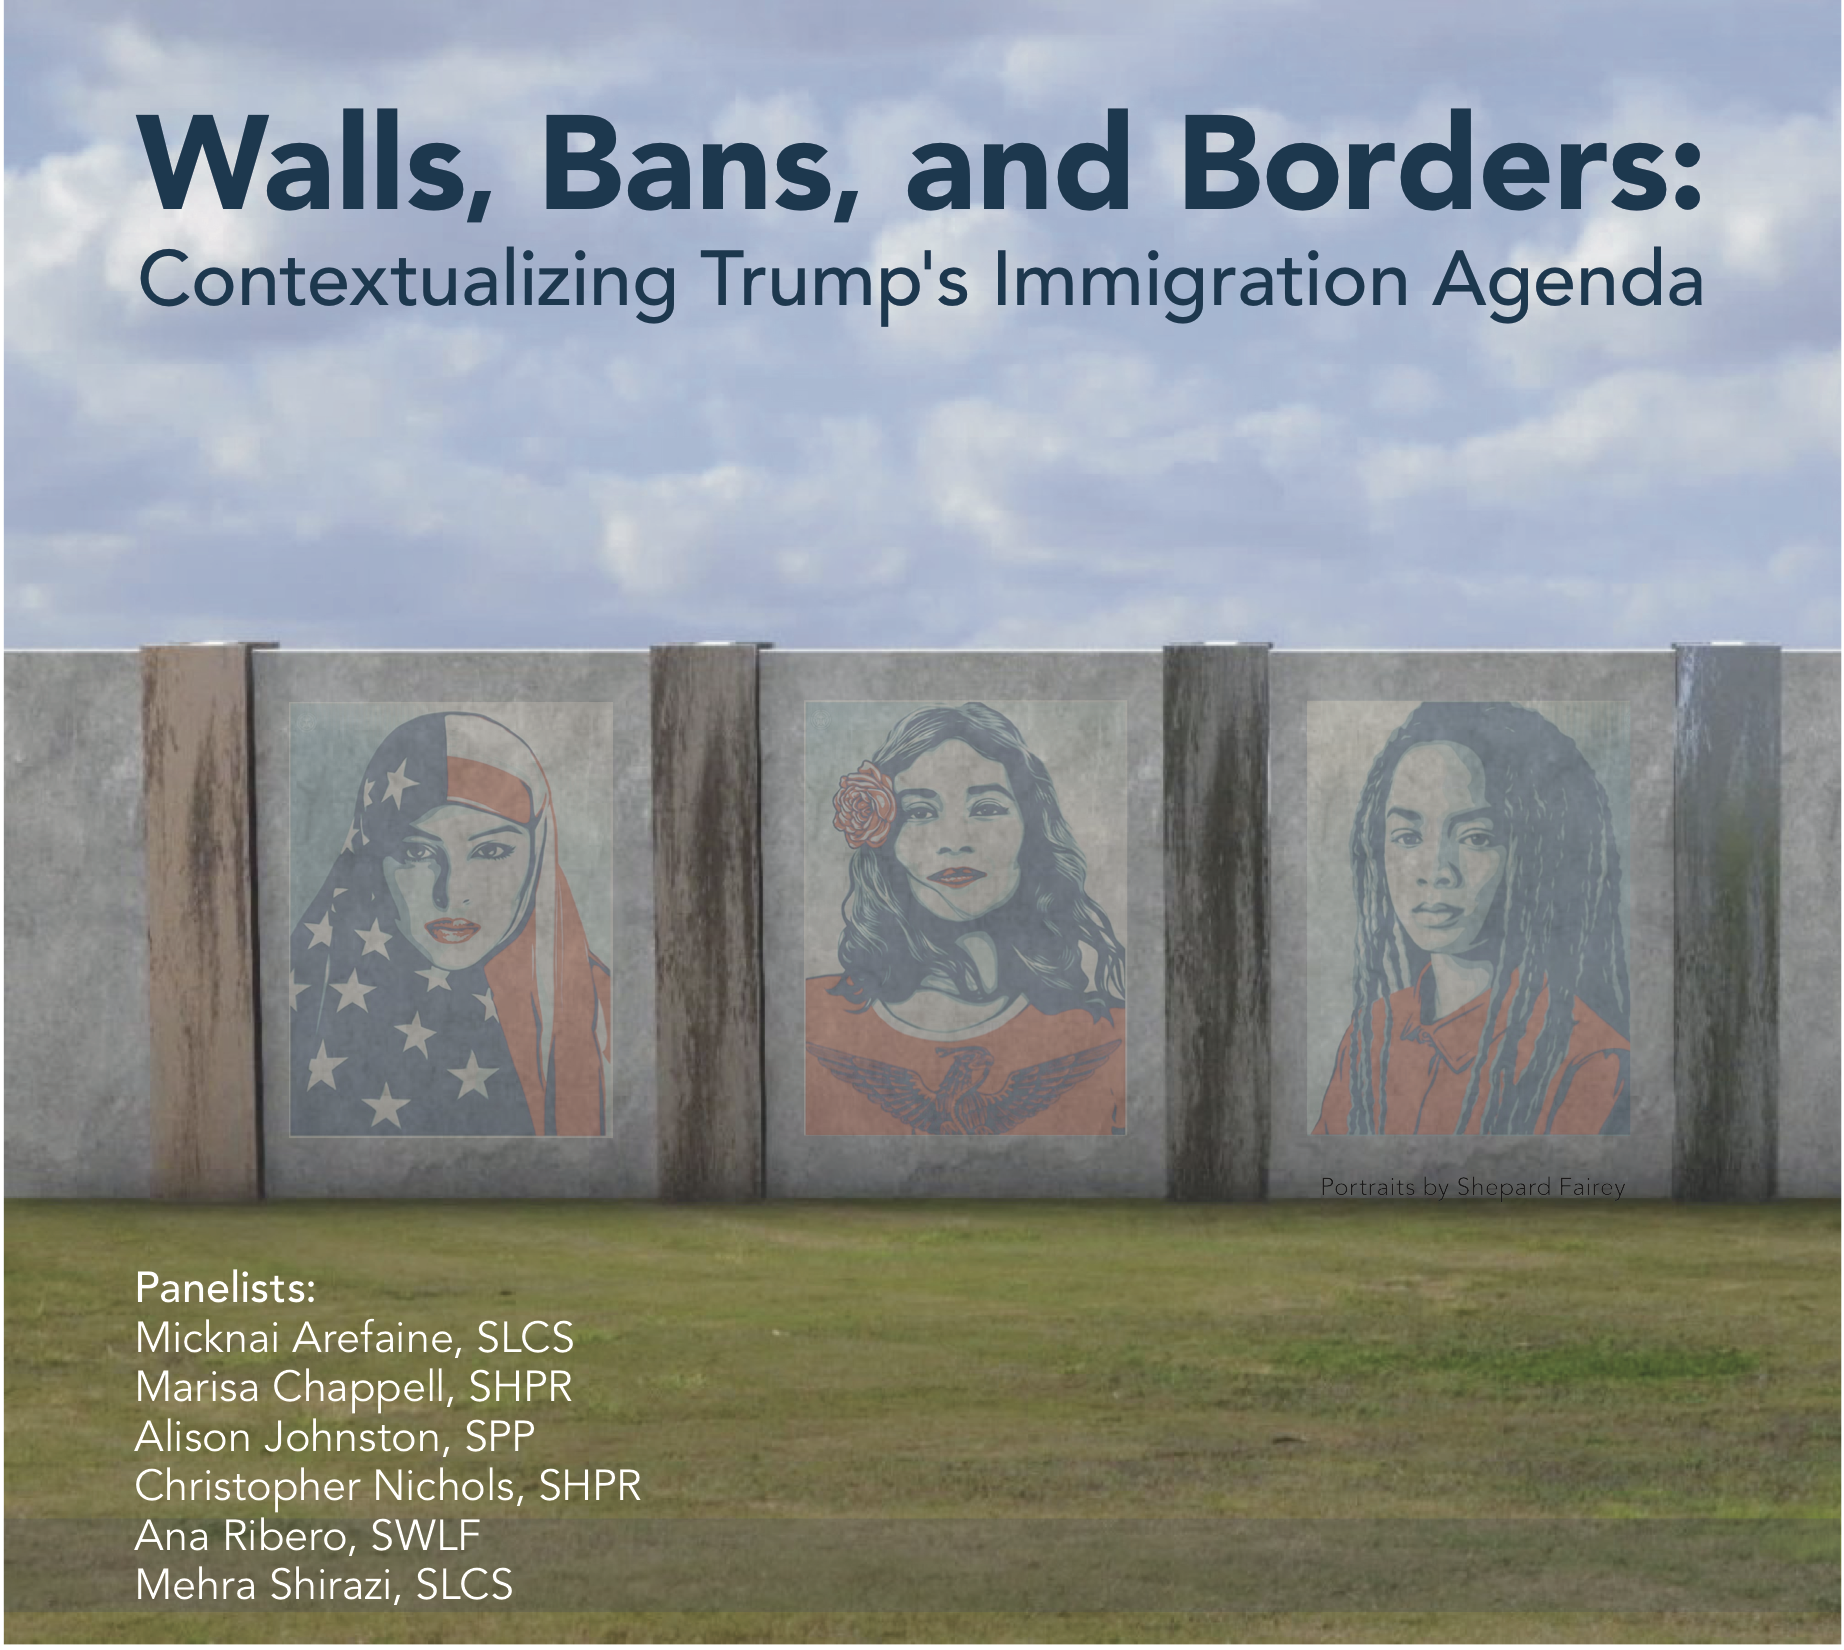 Walls, Bans and Borders: Contextualizing Trump's Agenda